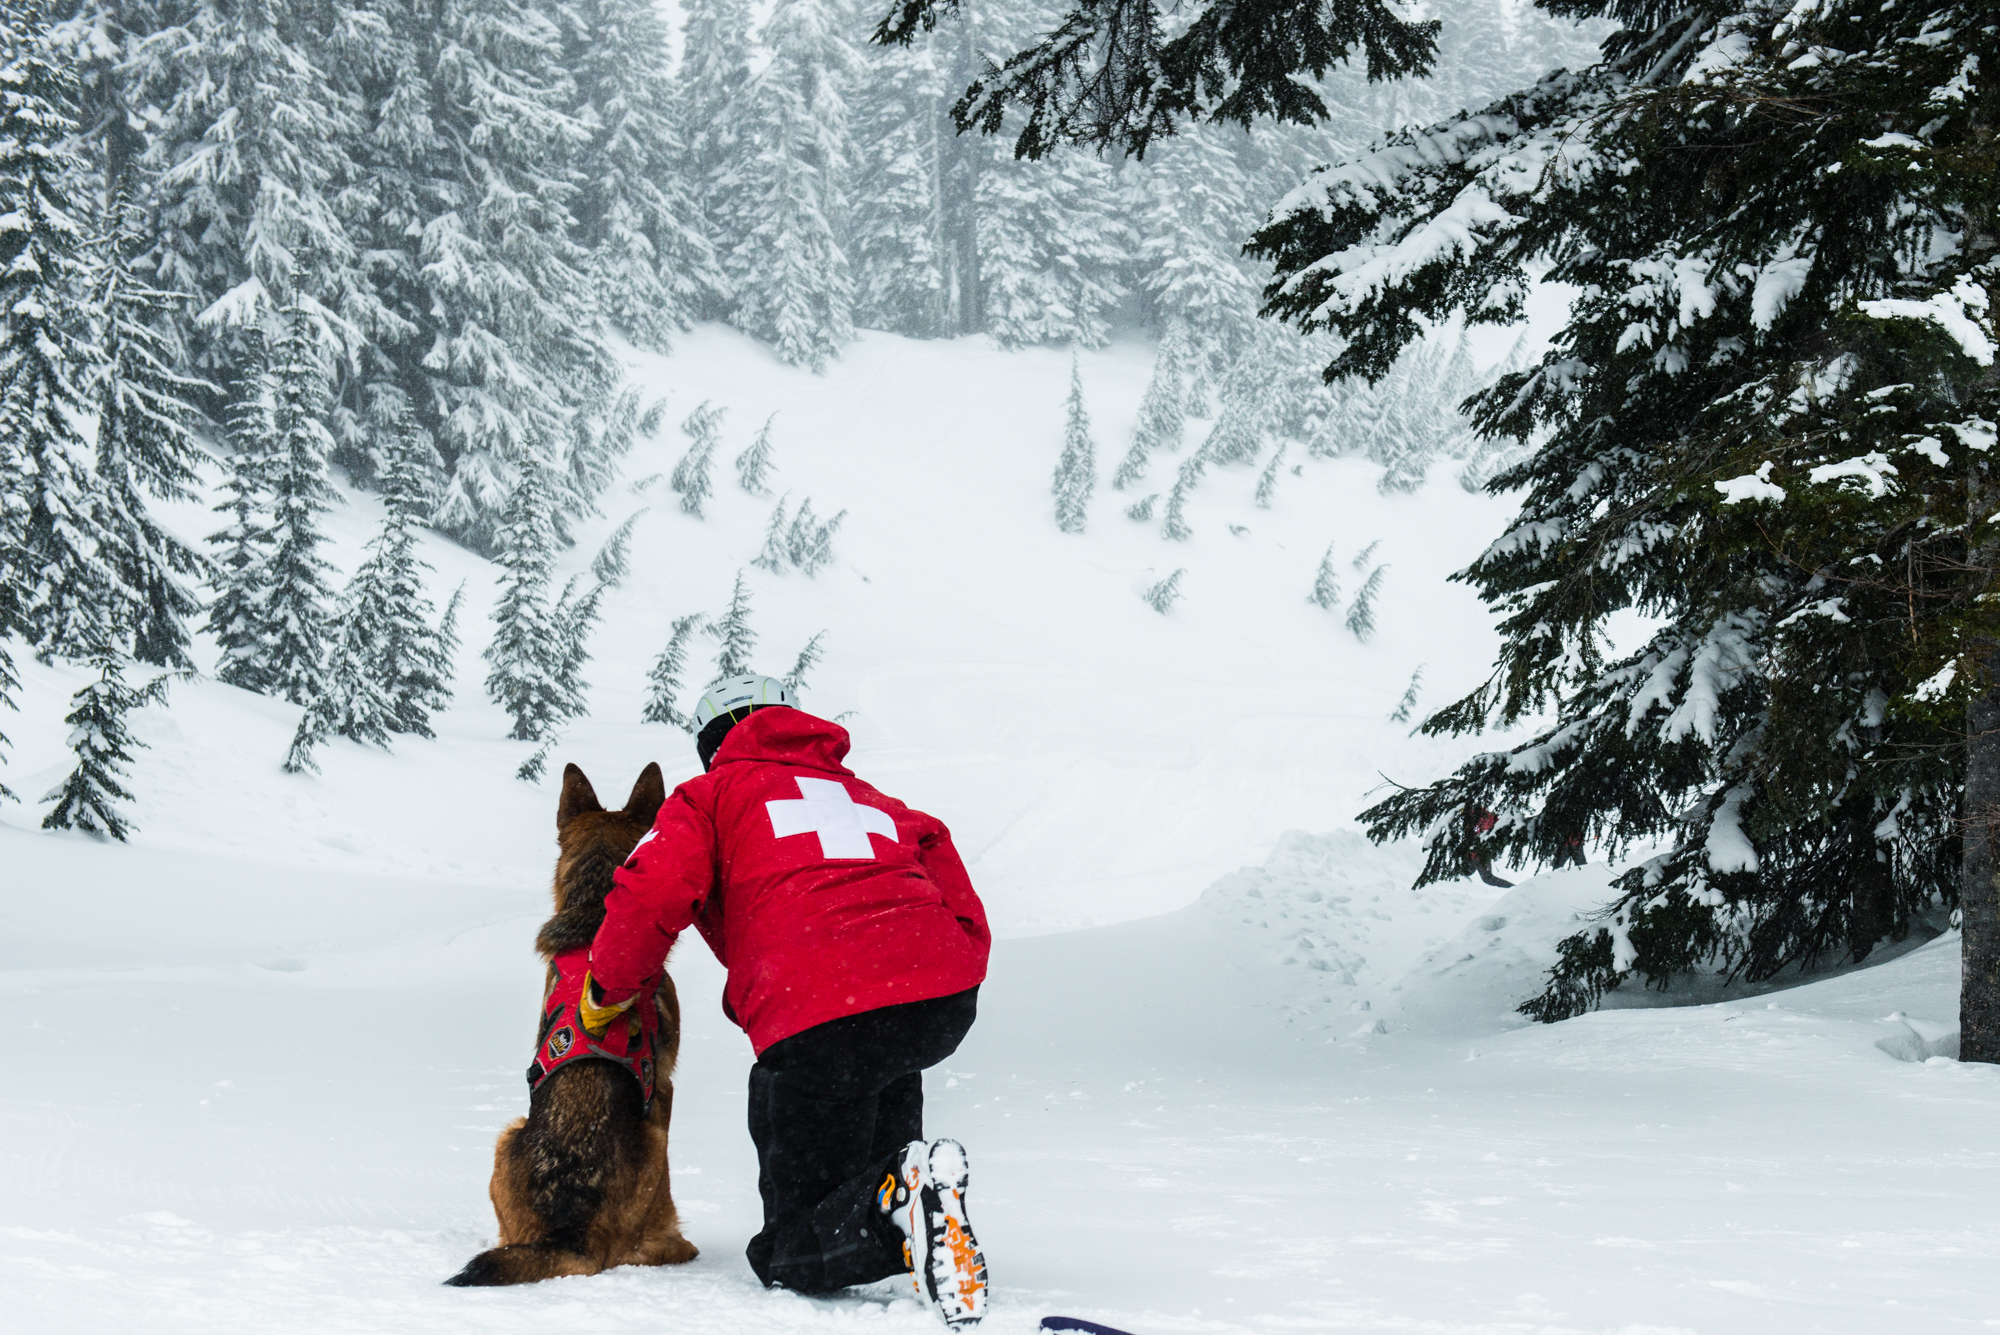 Unique Training Teaches These Avalanche Dogs to Save Lives